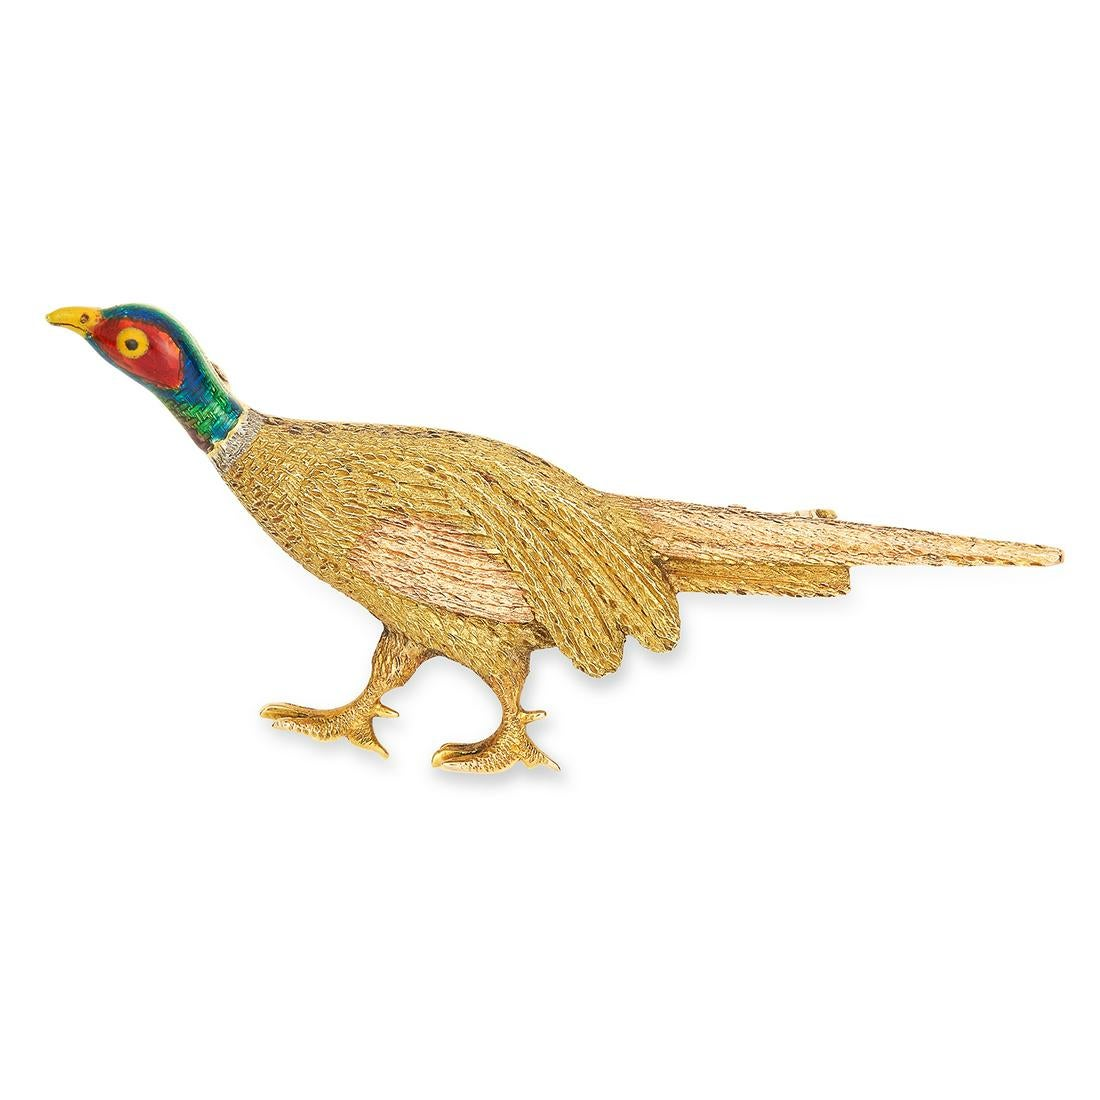 ANTIQUE PHEASANT BROOCH